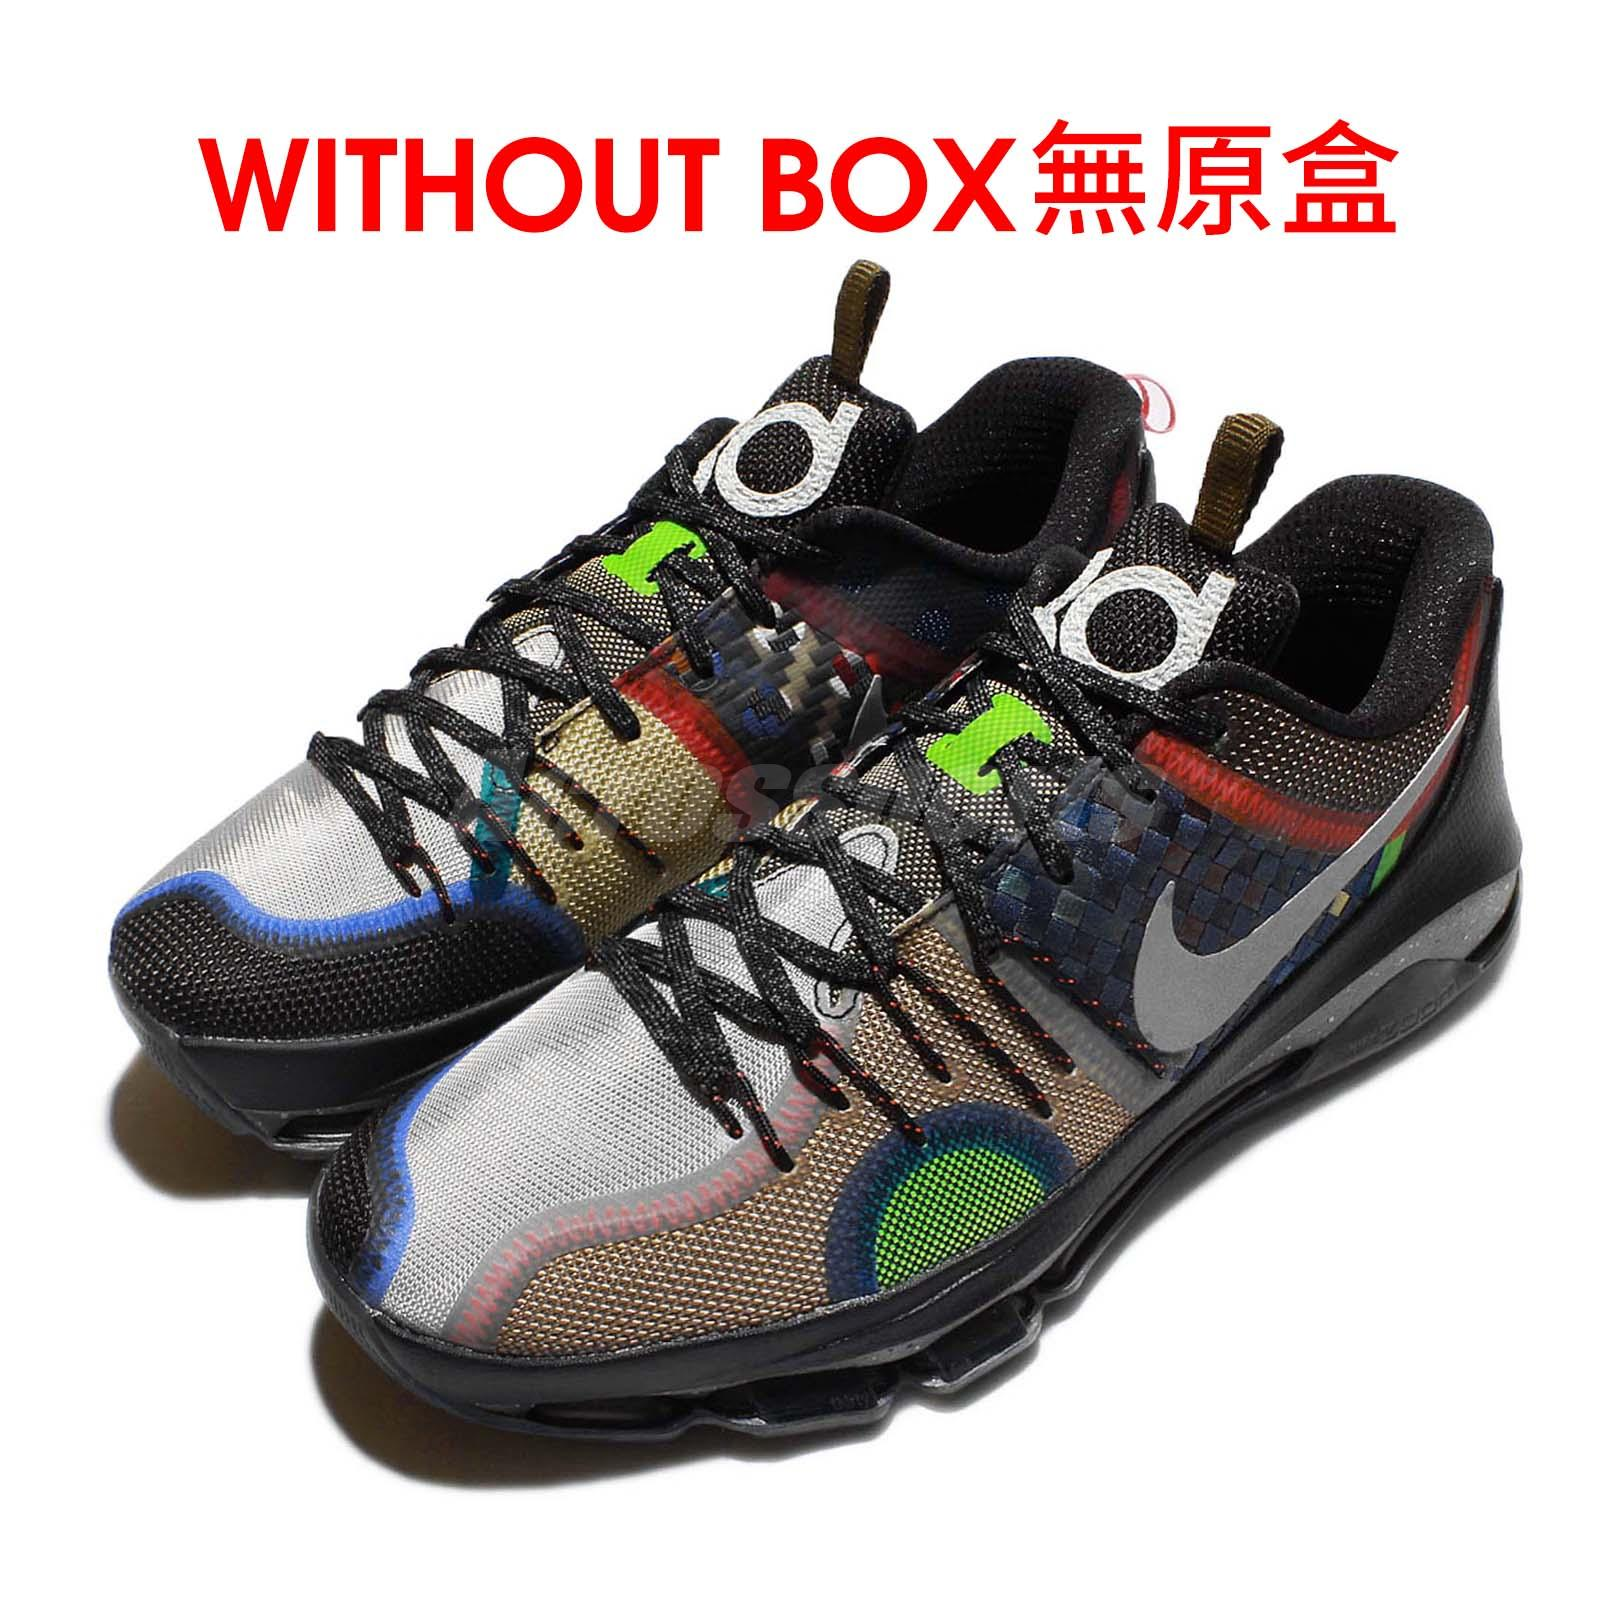 e81123aa4554 Details about Nike KD 8 SE EP VIII What The Kevin Durant NWOB Men Shoes  Sneakers 845895-999